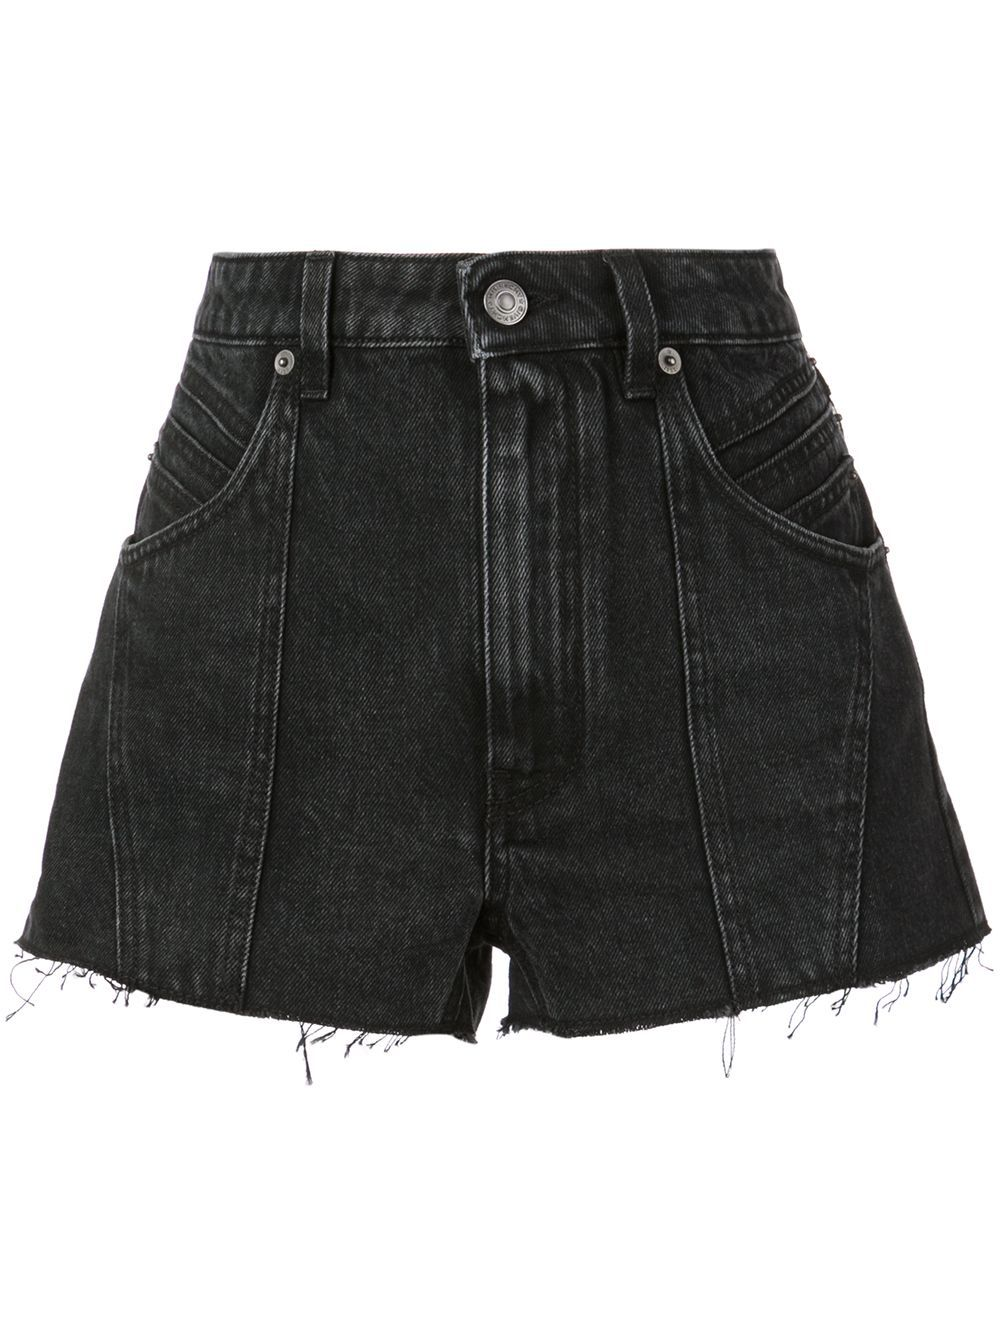 Short Jeans For Women Distressed Jean Shorts Shorts To Wear Under Skirts To Prevent Chafing Grey Jean Shorts Womens